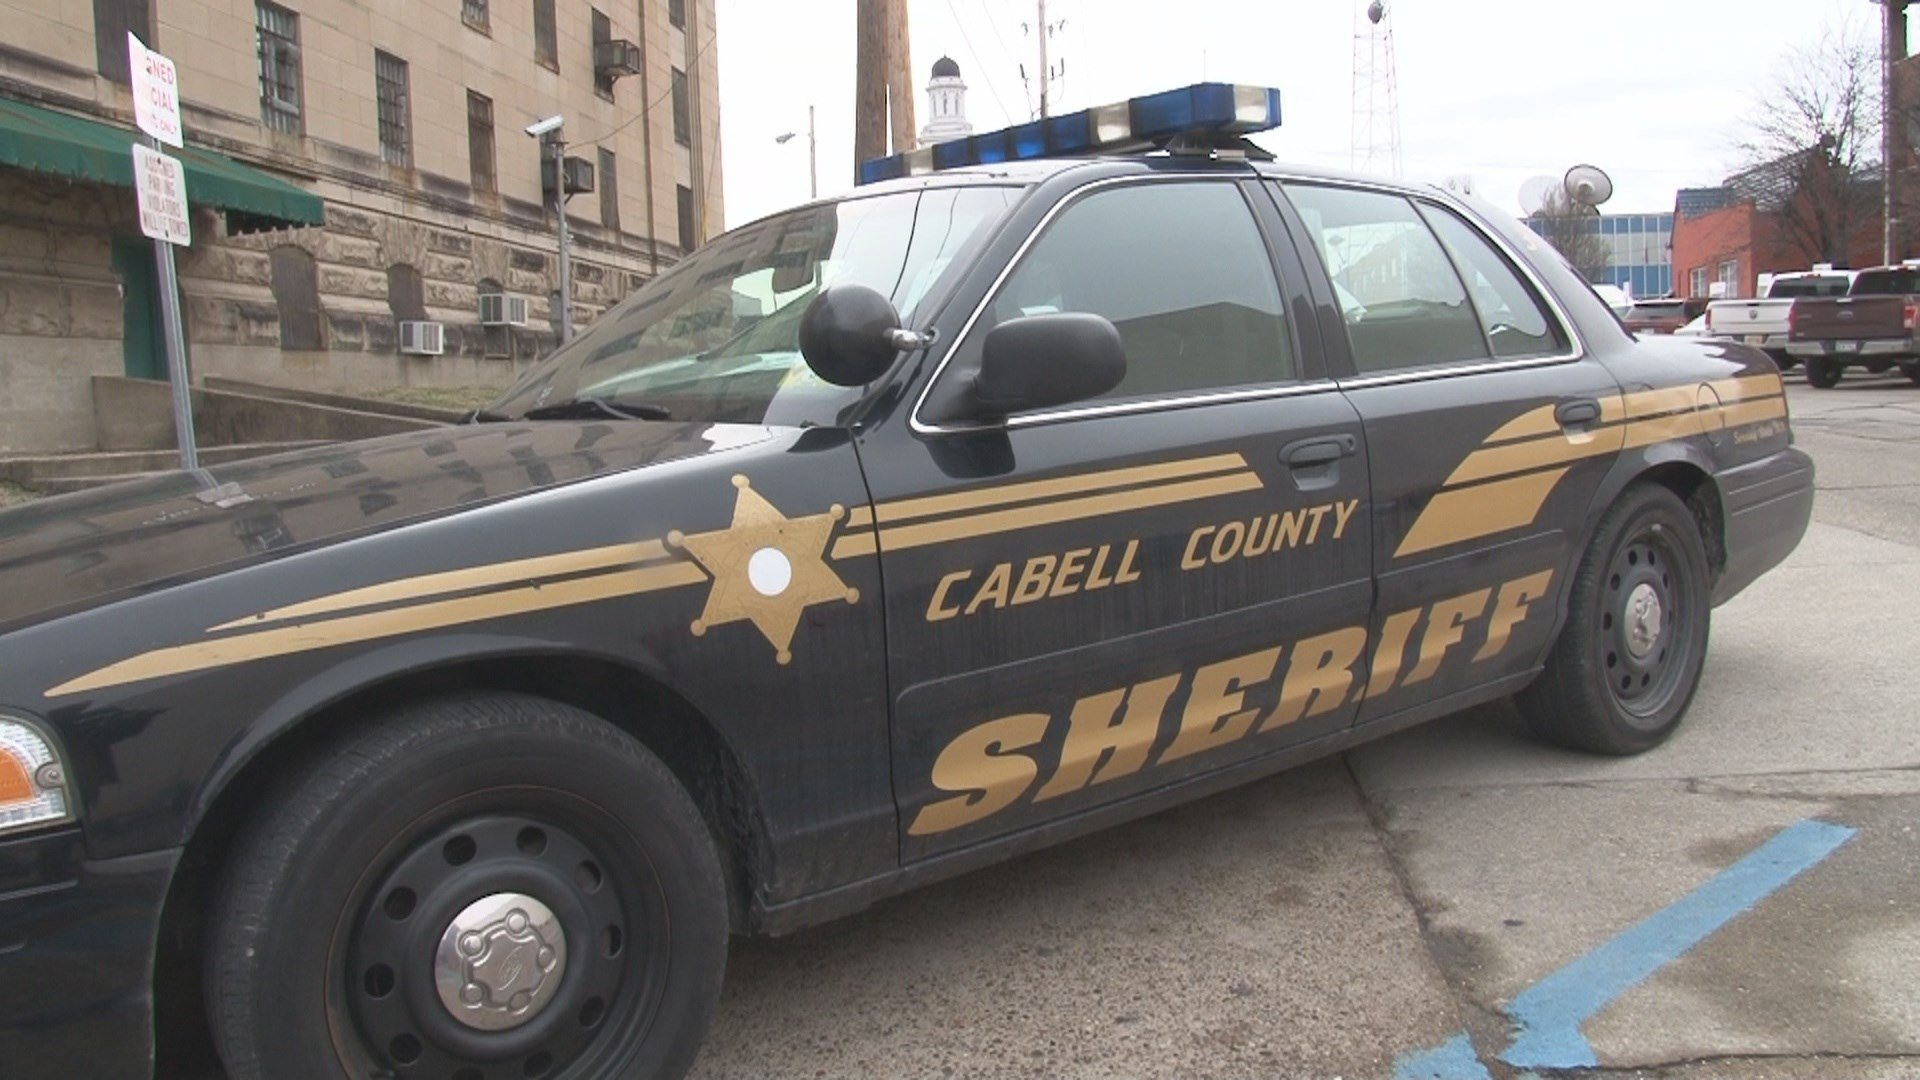 Cabell County Sheriff hiring deputies laid off police